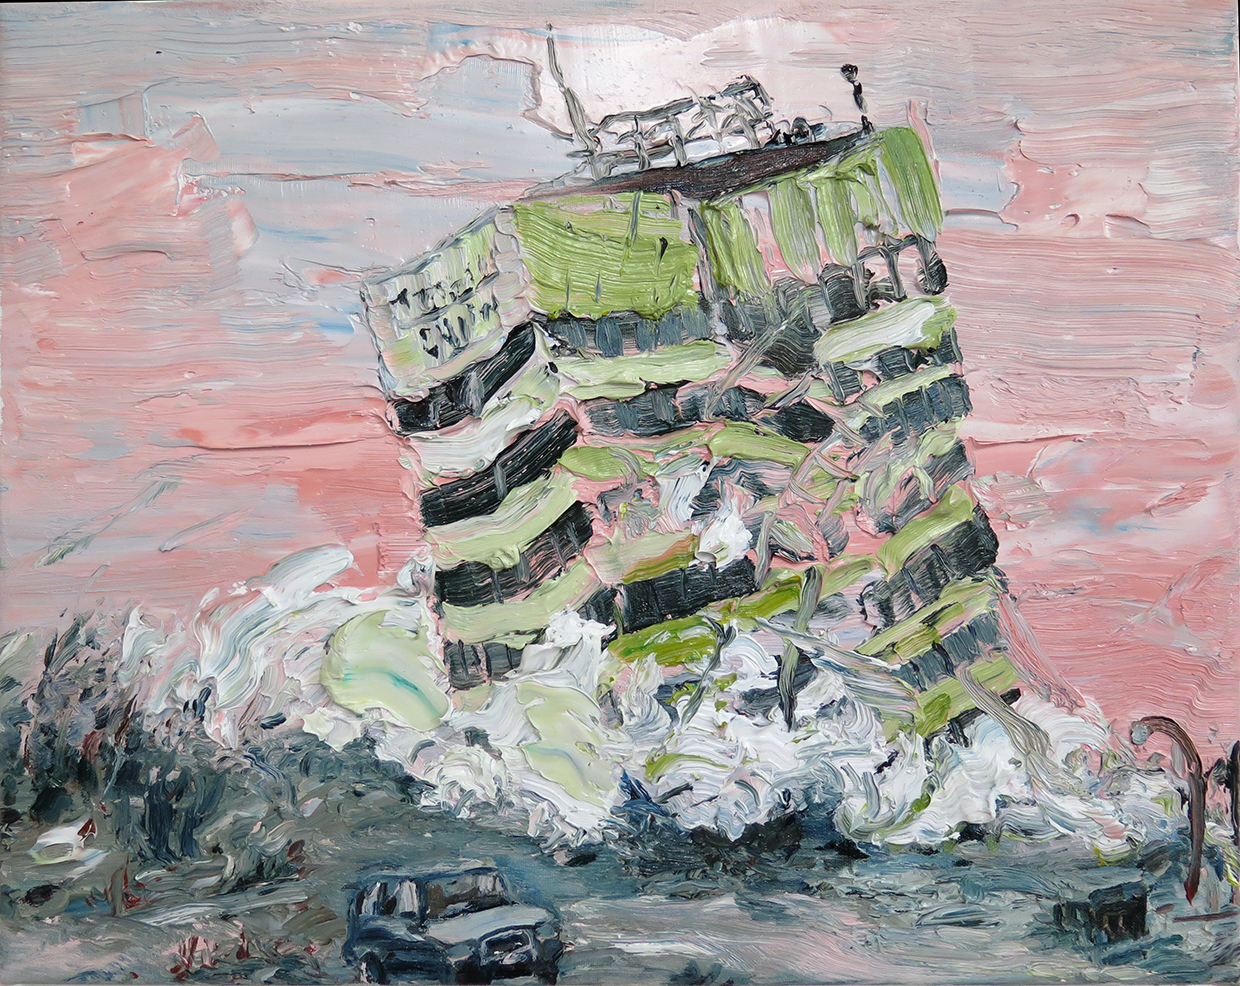 """Christchurch Landmark"" Oil on canvas 16"" x 20"", 2014"